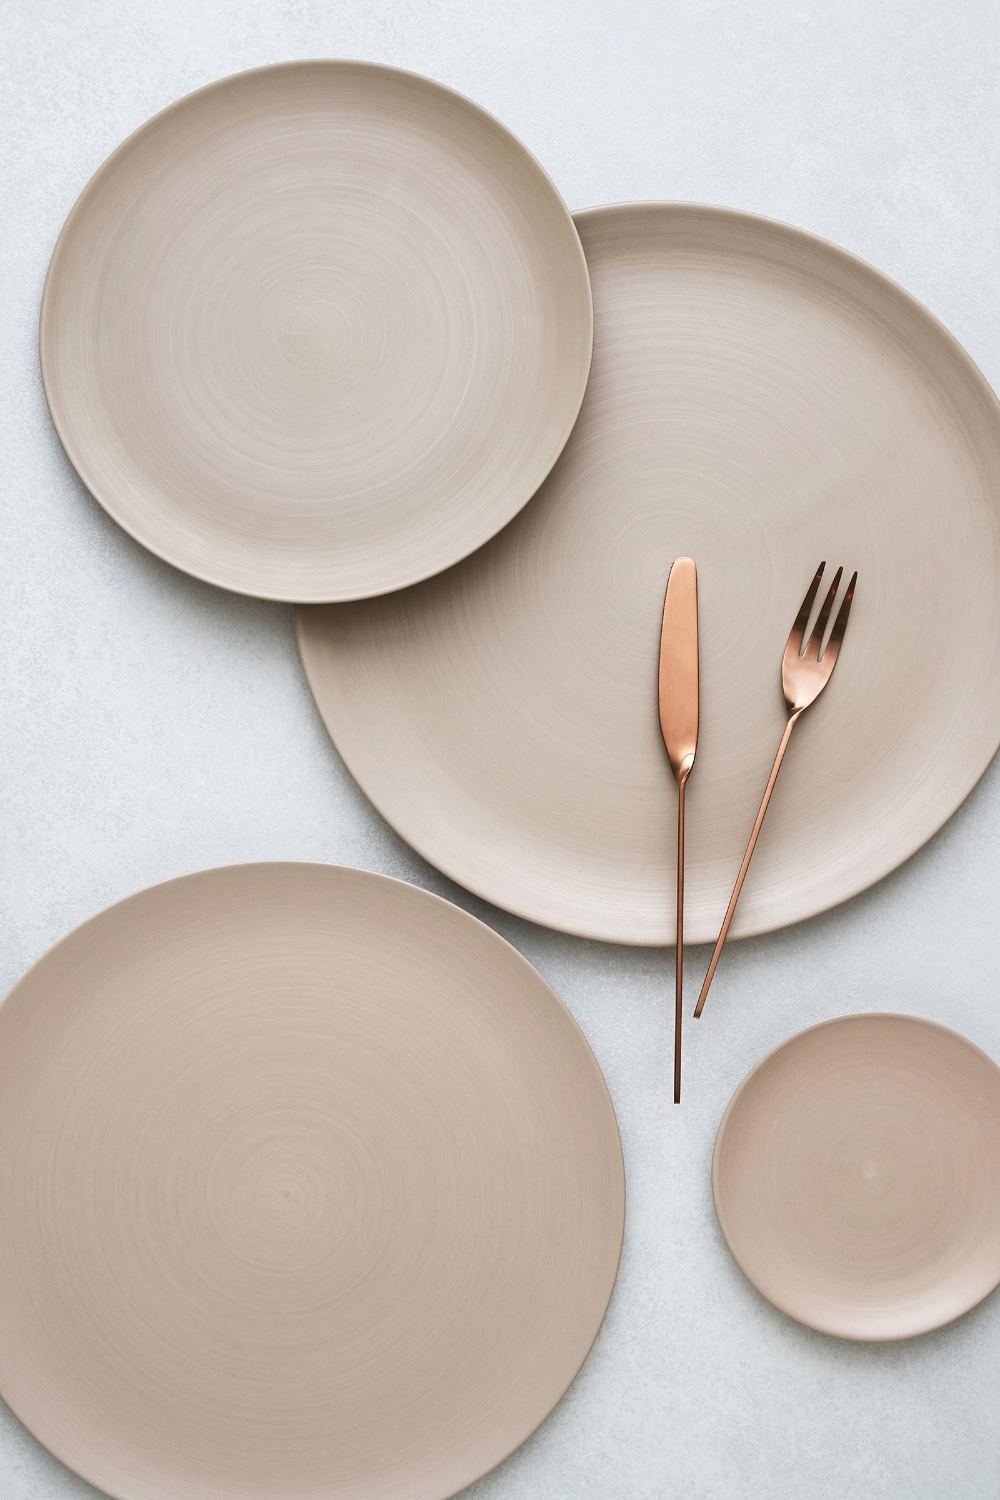 Ceramic Tableware Set With Platters Plates Bowls Bowls Ceramic Plates In 2020 Platen Serviesset Keramiek